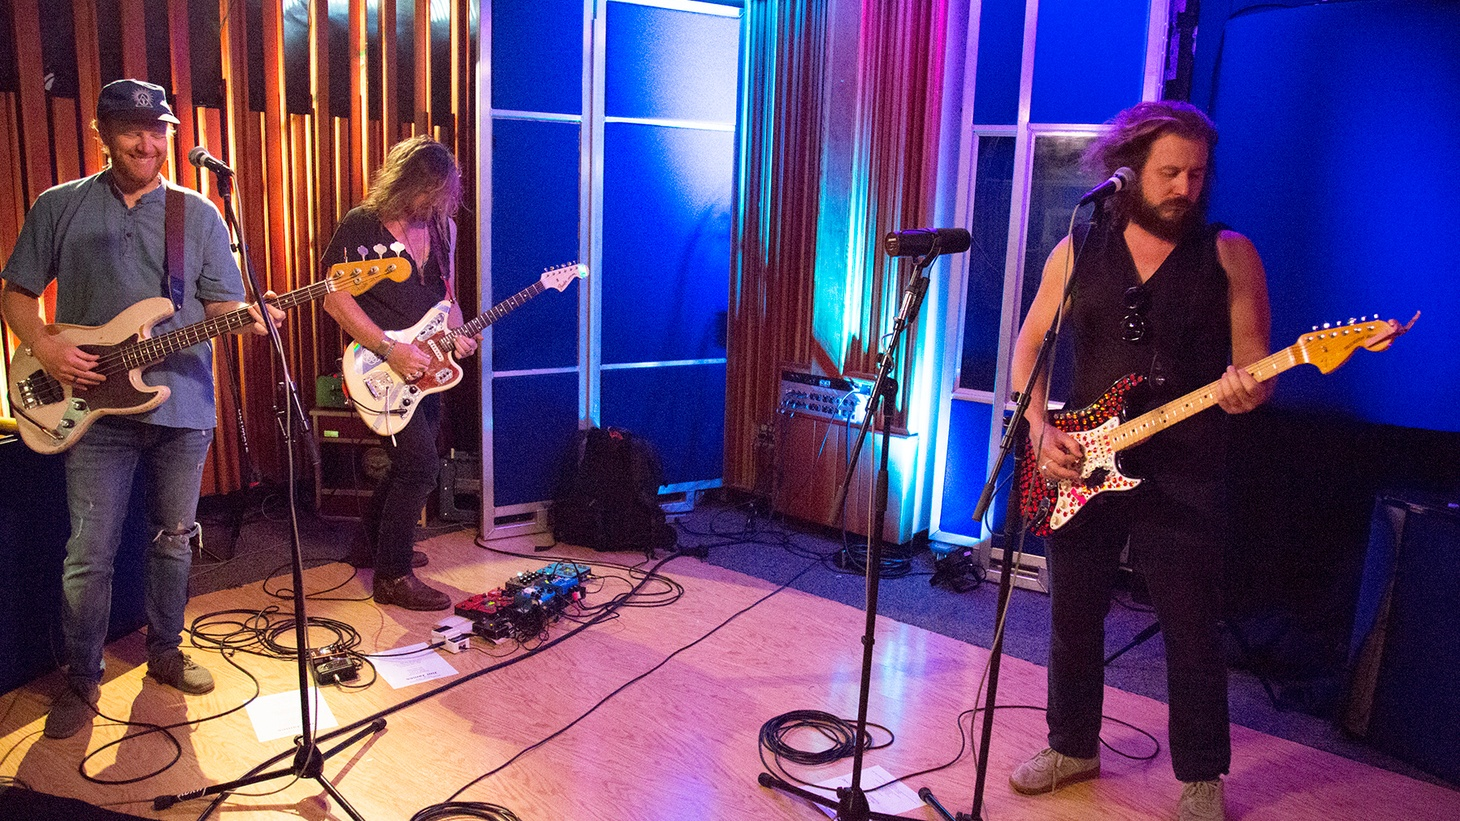 On a recent visit to MBE, My Morning Jacket frontman and guitar hero Jim James brought a full band to our studios to play songs from his fuzz-drenched new solo album.